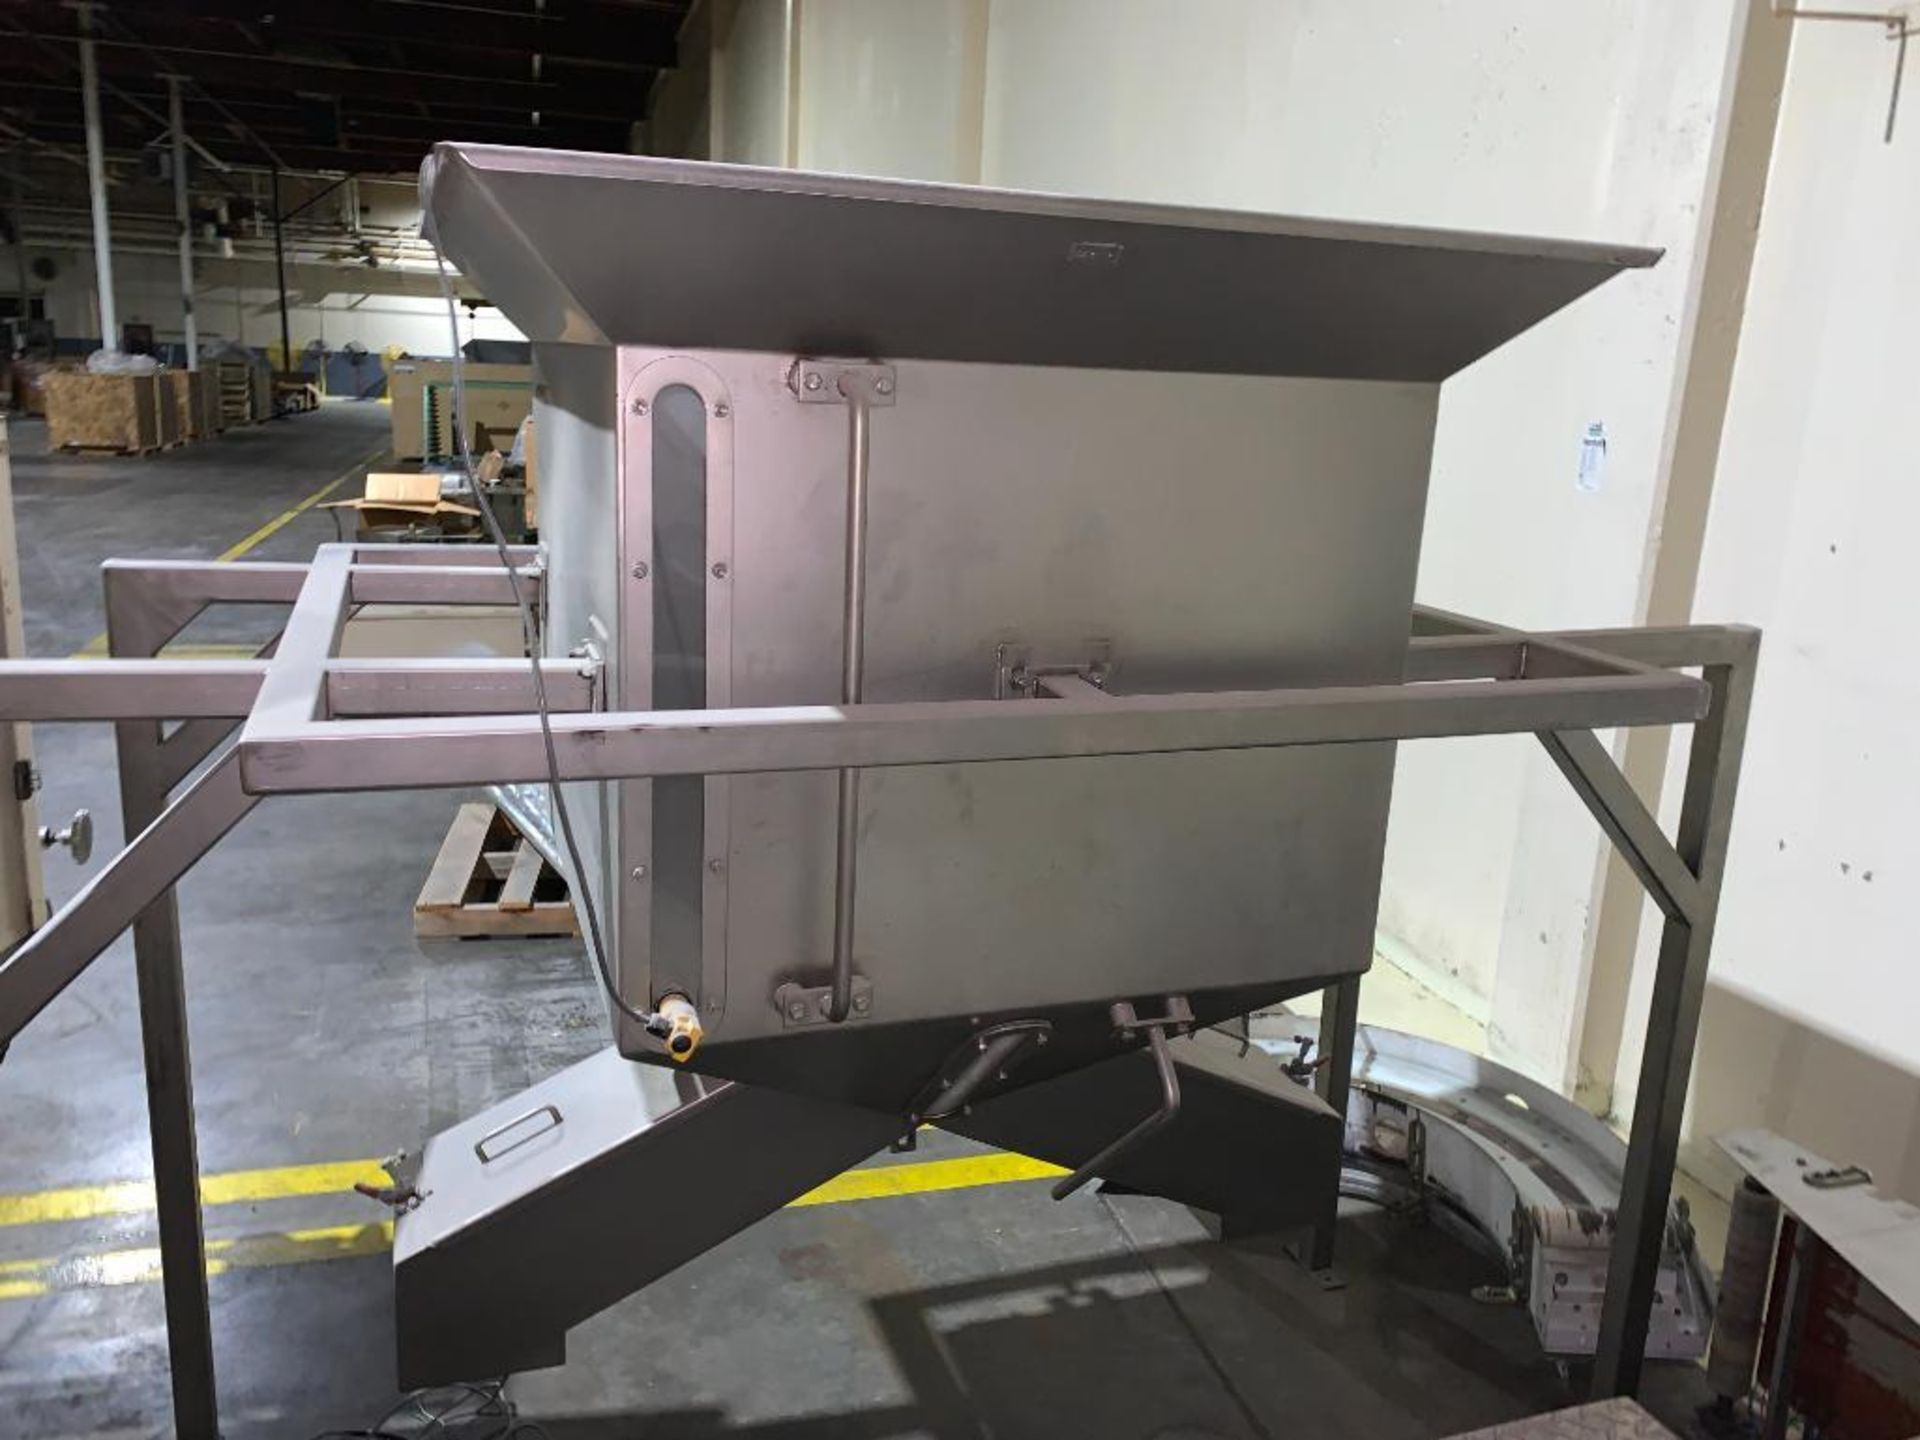 stainless steel dual chute hopper - Image 2 of 7